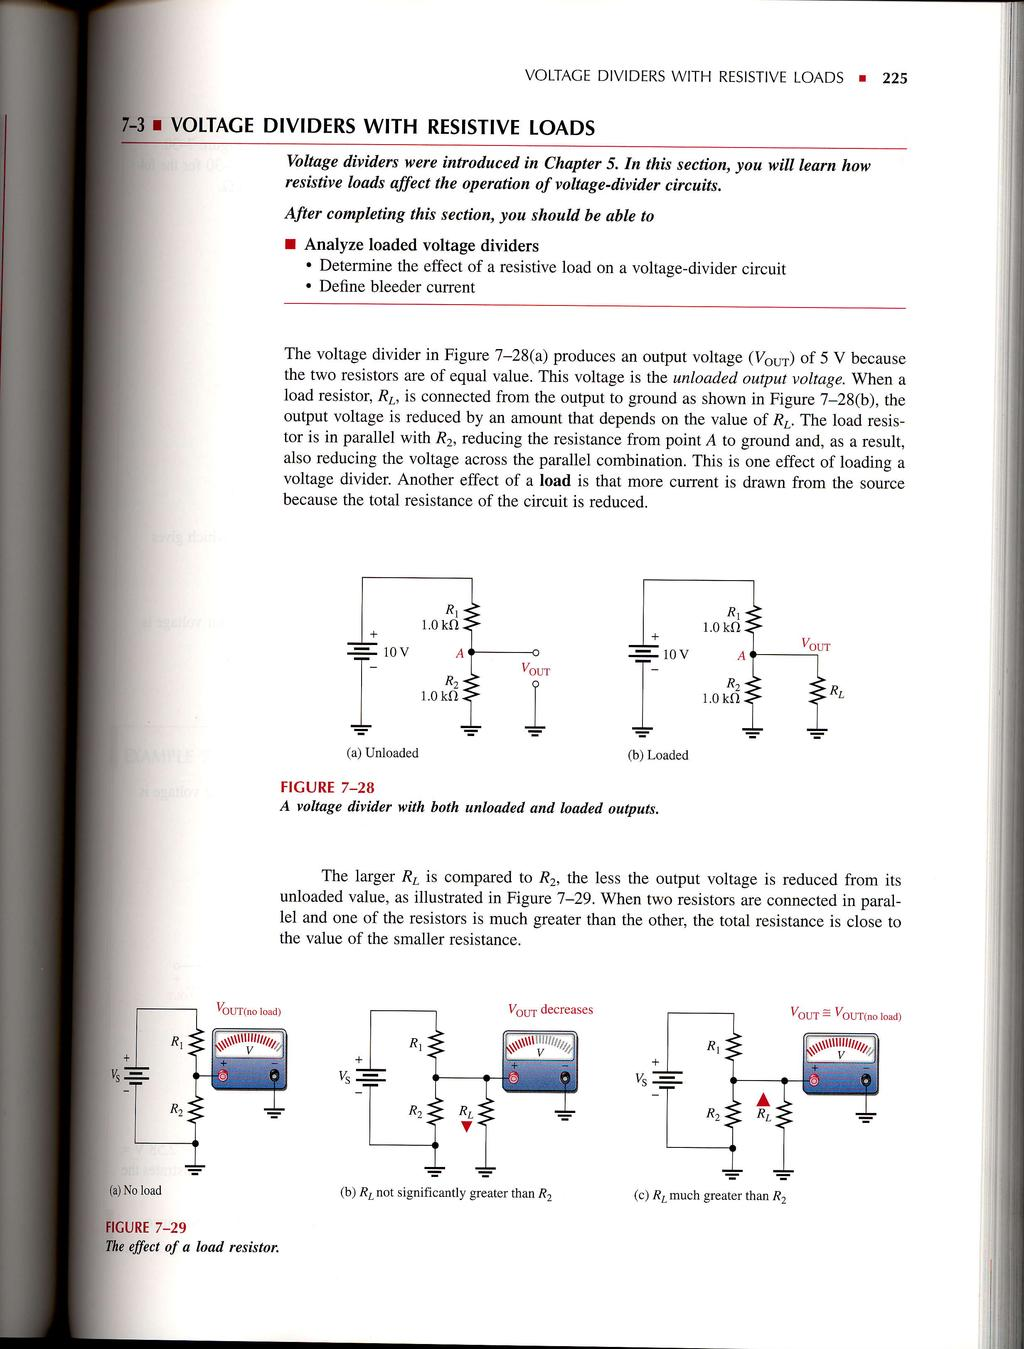 Seriesparallel Circuits Pdf Voltage Divider Network To Solve For Any Varaible In The I Voitage Dividers With Resistive Loads Voltace Resist Ve 225 Divi